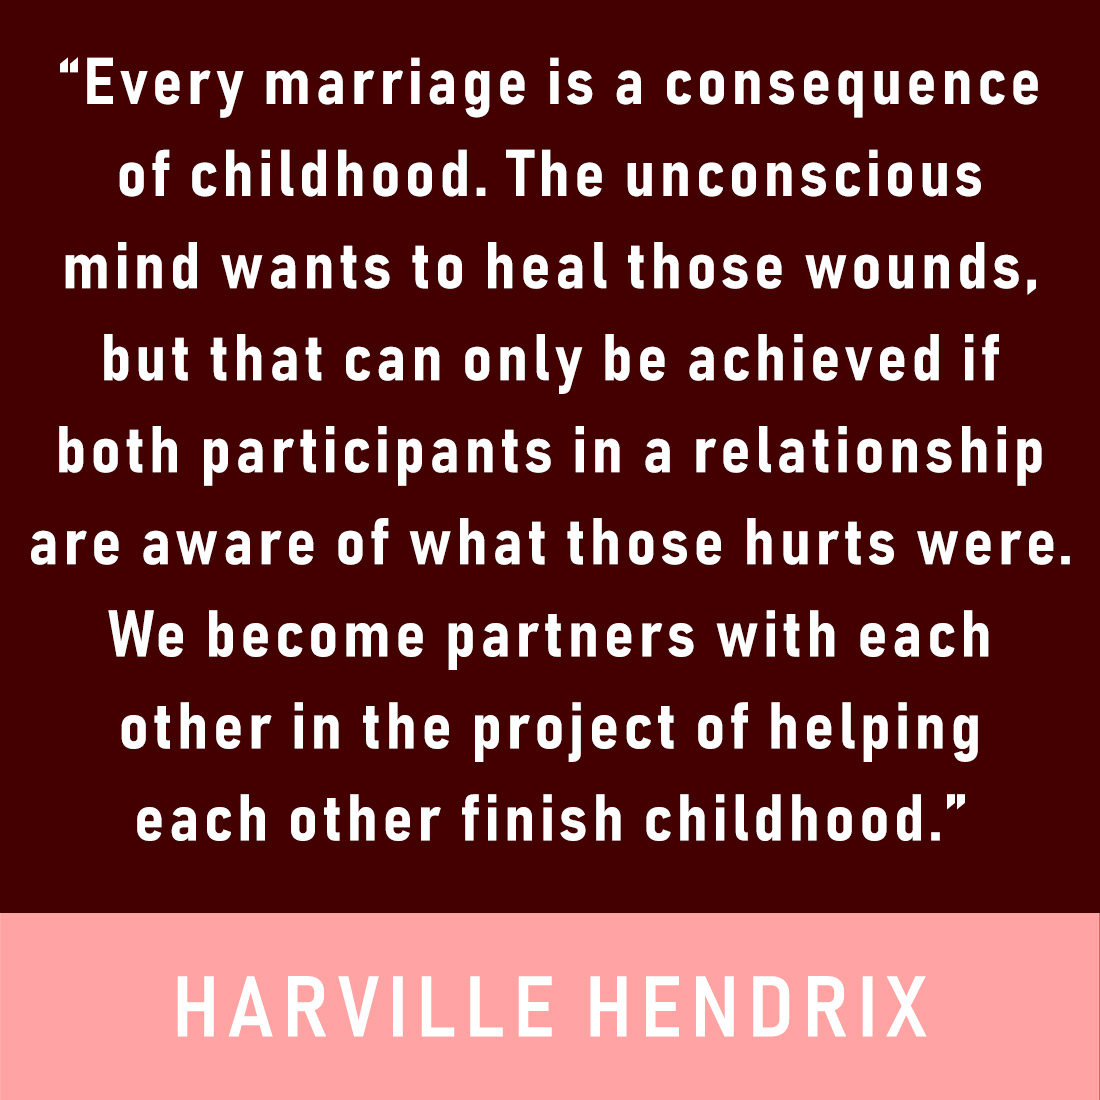 Harville Hendrix quote